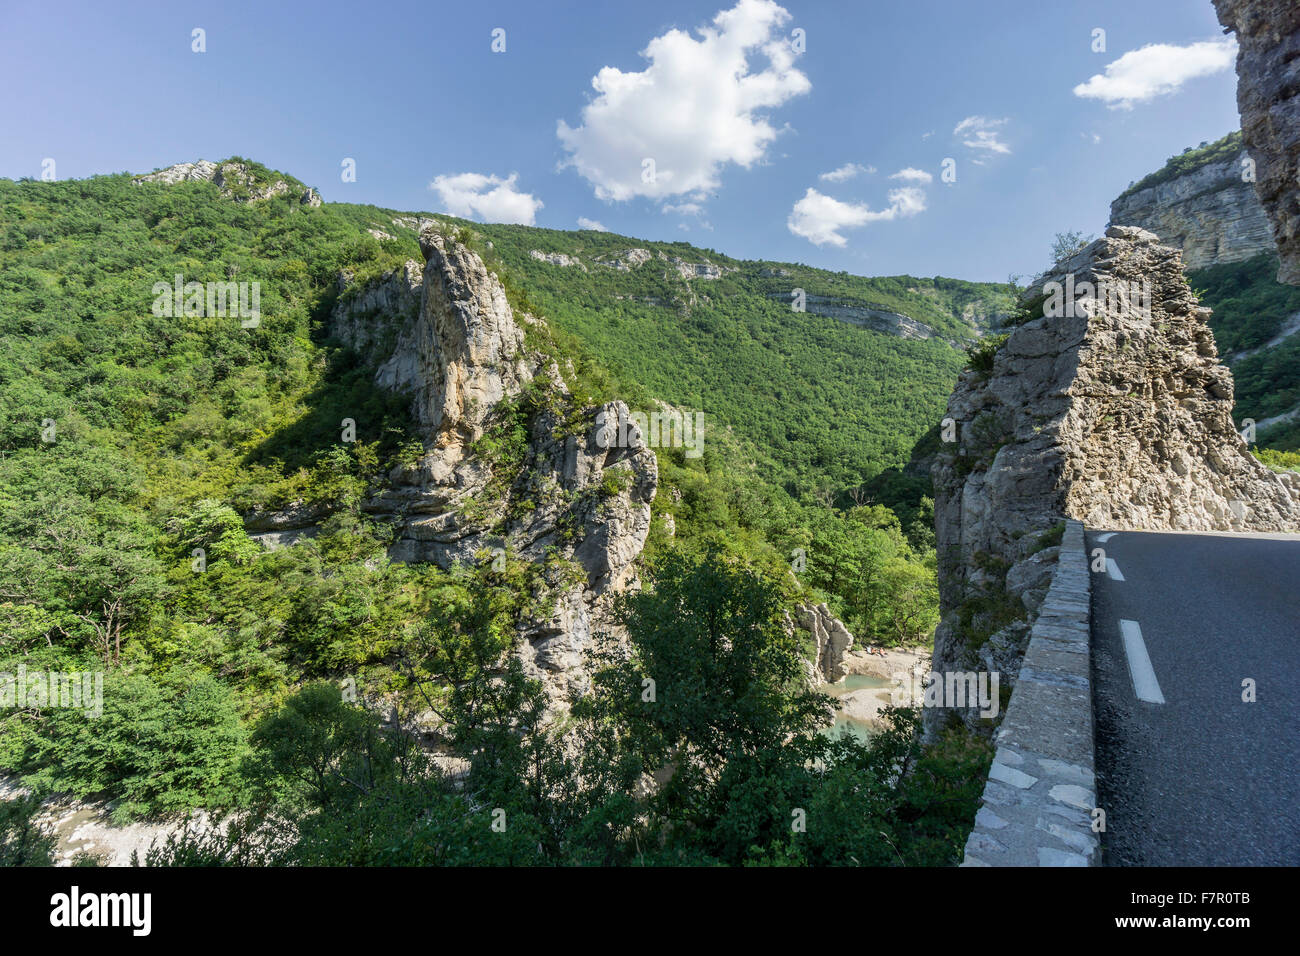 George de la Meouge, Durance, Rhone Alpes, South of France, Stock Photo